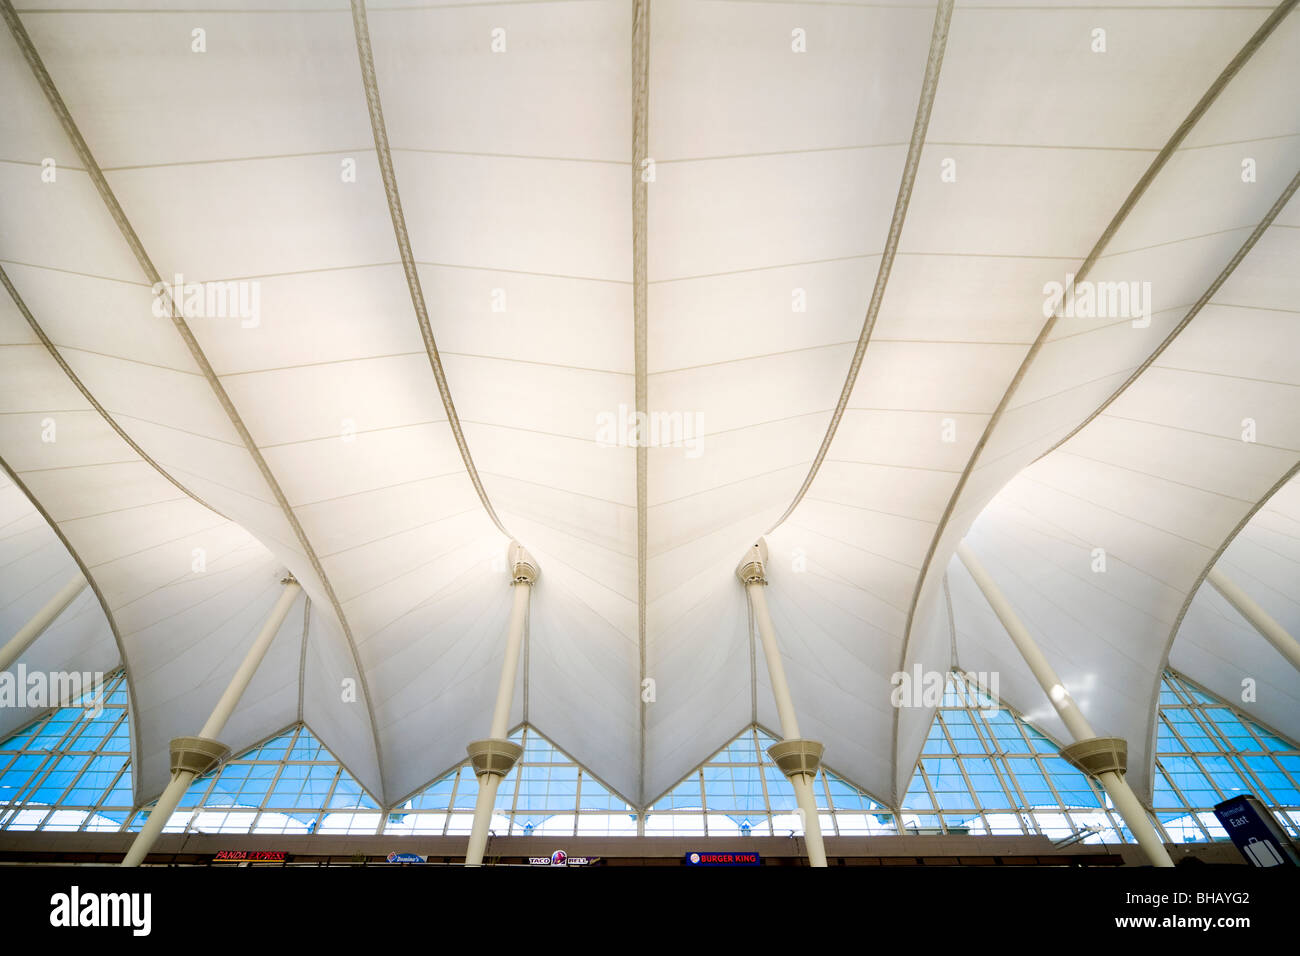 Denver Airport Tent Like Roof Structure Tensile